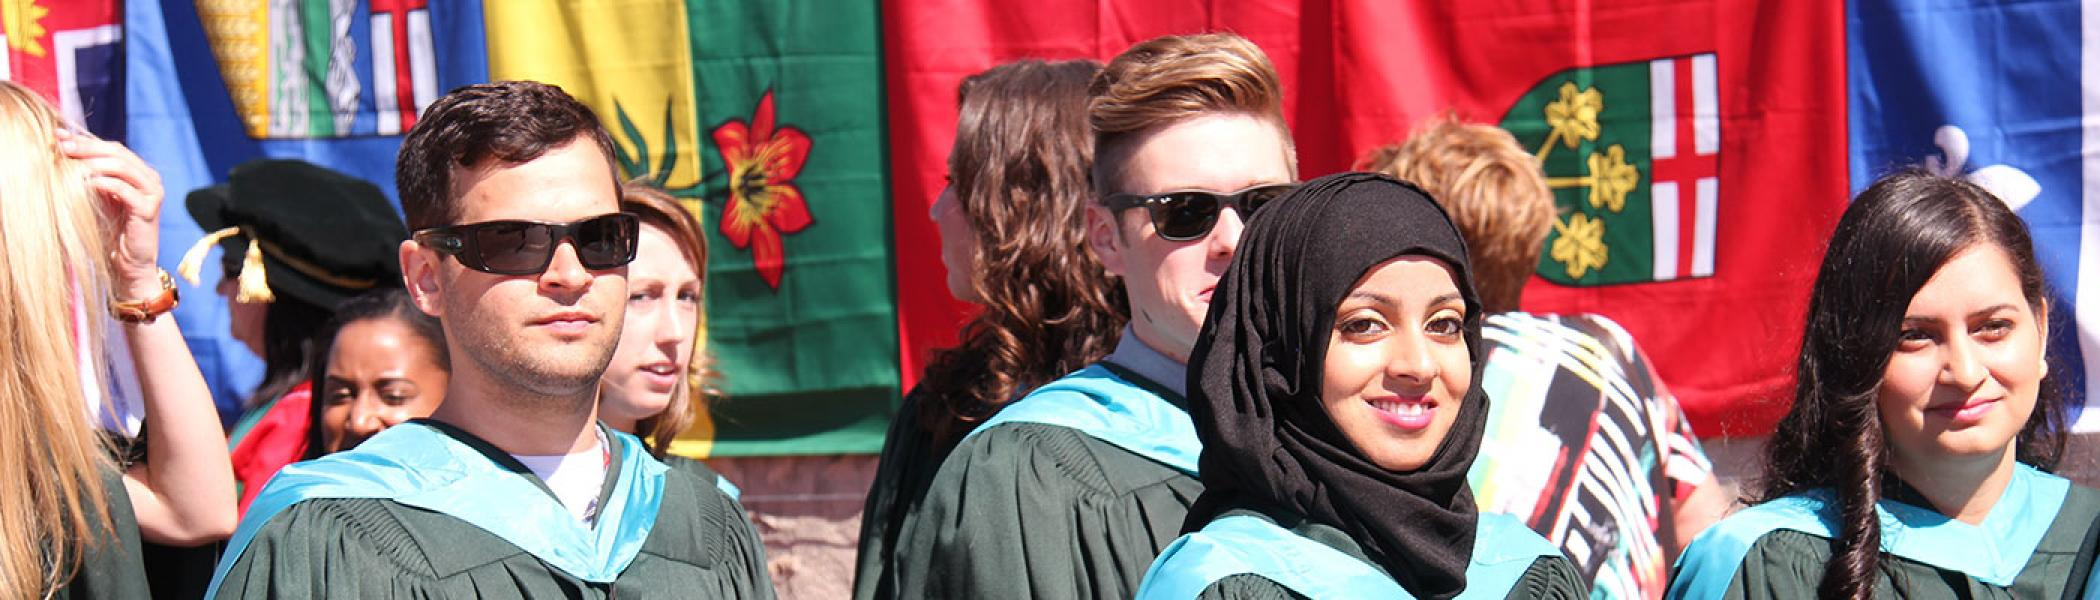 International students standing in front of flags at Convocation